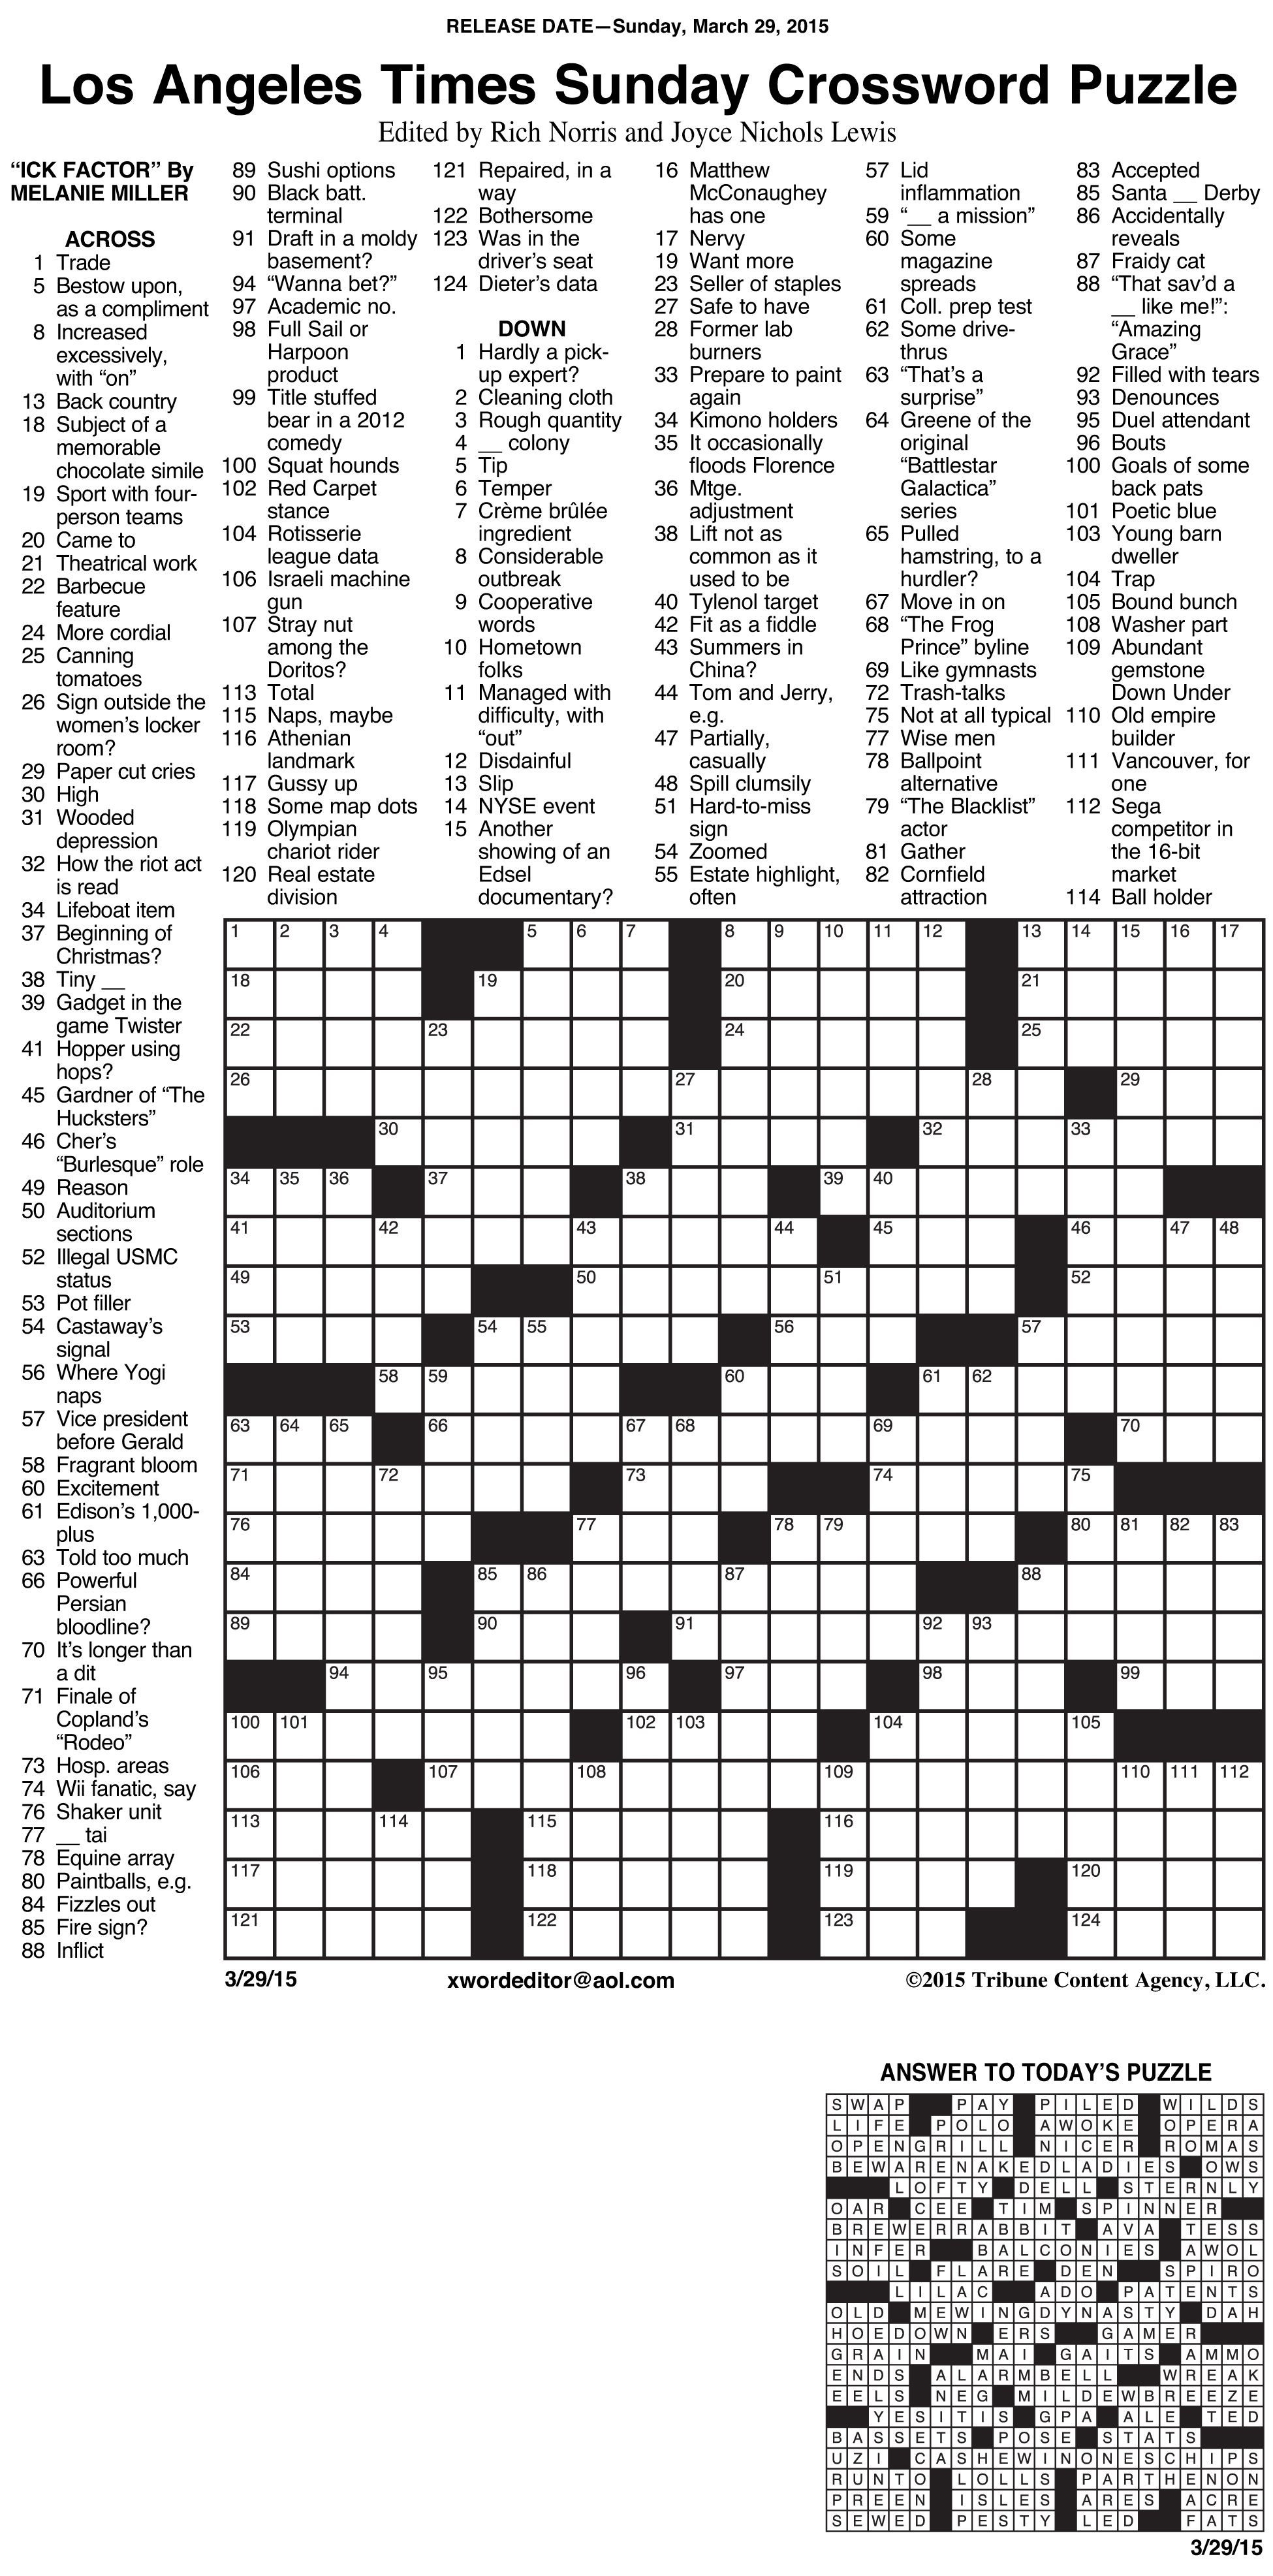 Images: Nyt Free Printable Crossword Puzzles, - Best Games Resource - Printable Crossword Puzzle La Times